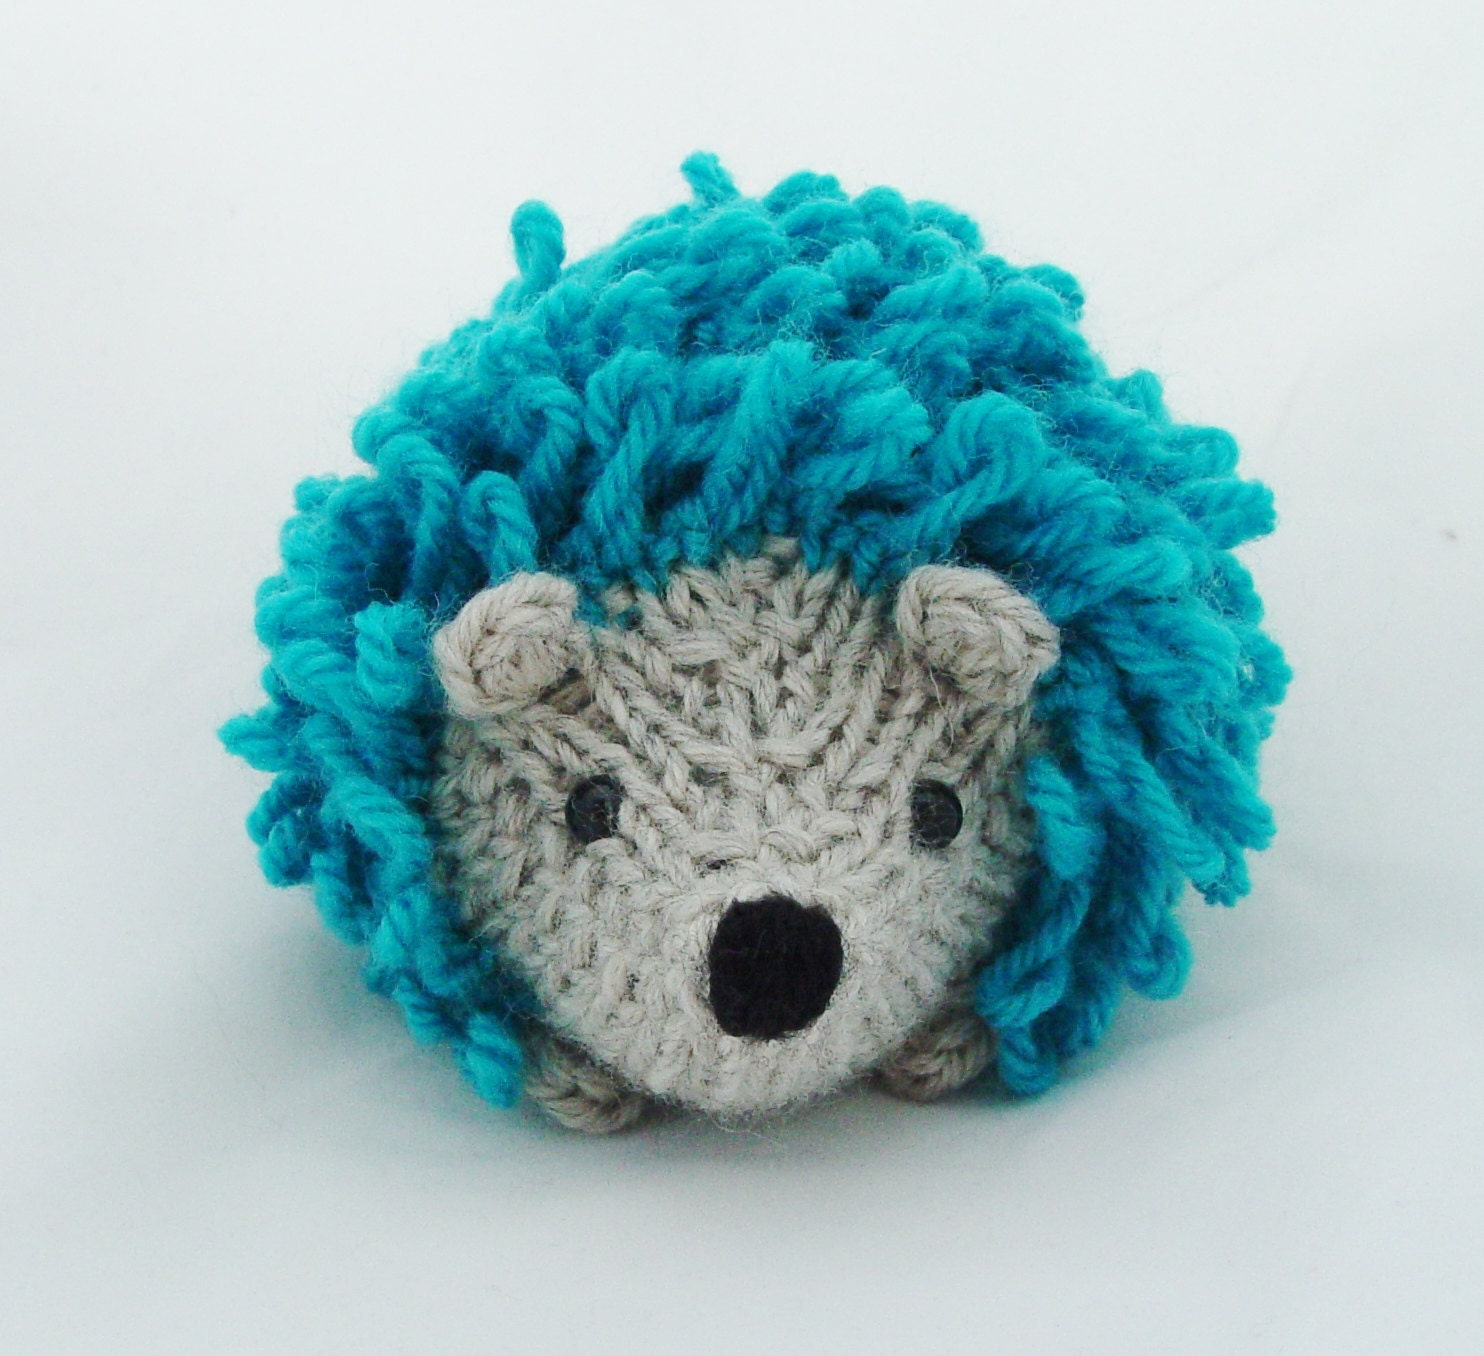 Stuffed Hedgehog Knitting Pattern : Little knitted hedgehog by Yarnigans on Etsy